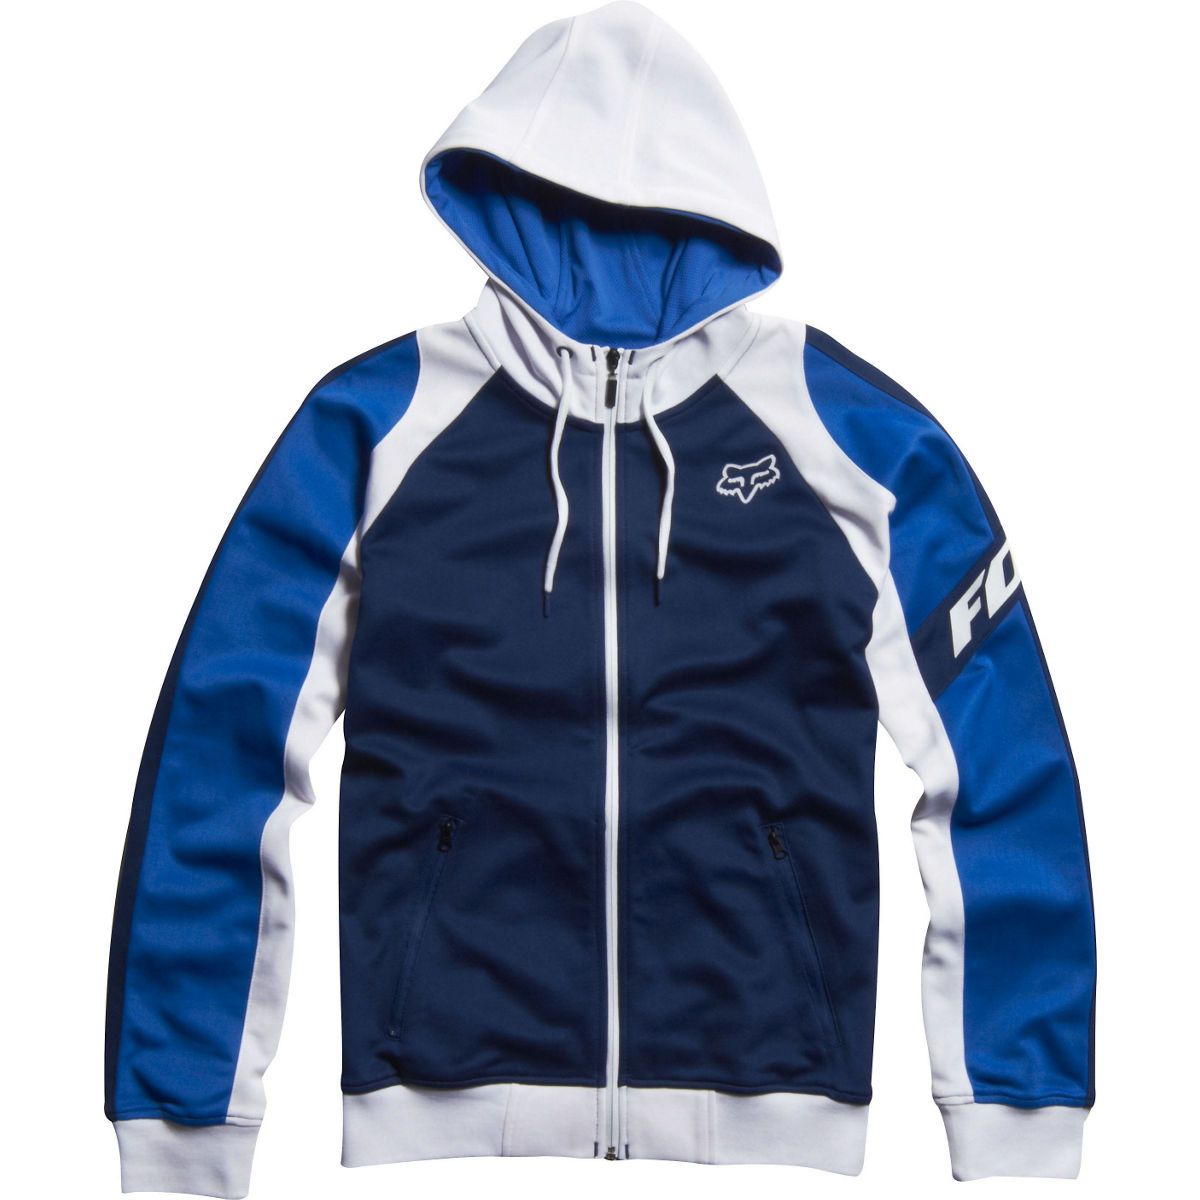 02155-329 Fox Racing LP Track Jacket Blue White